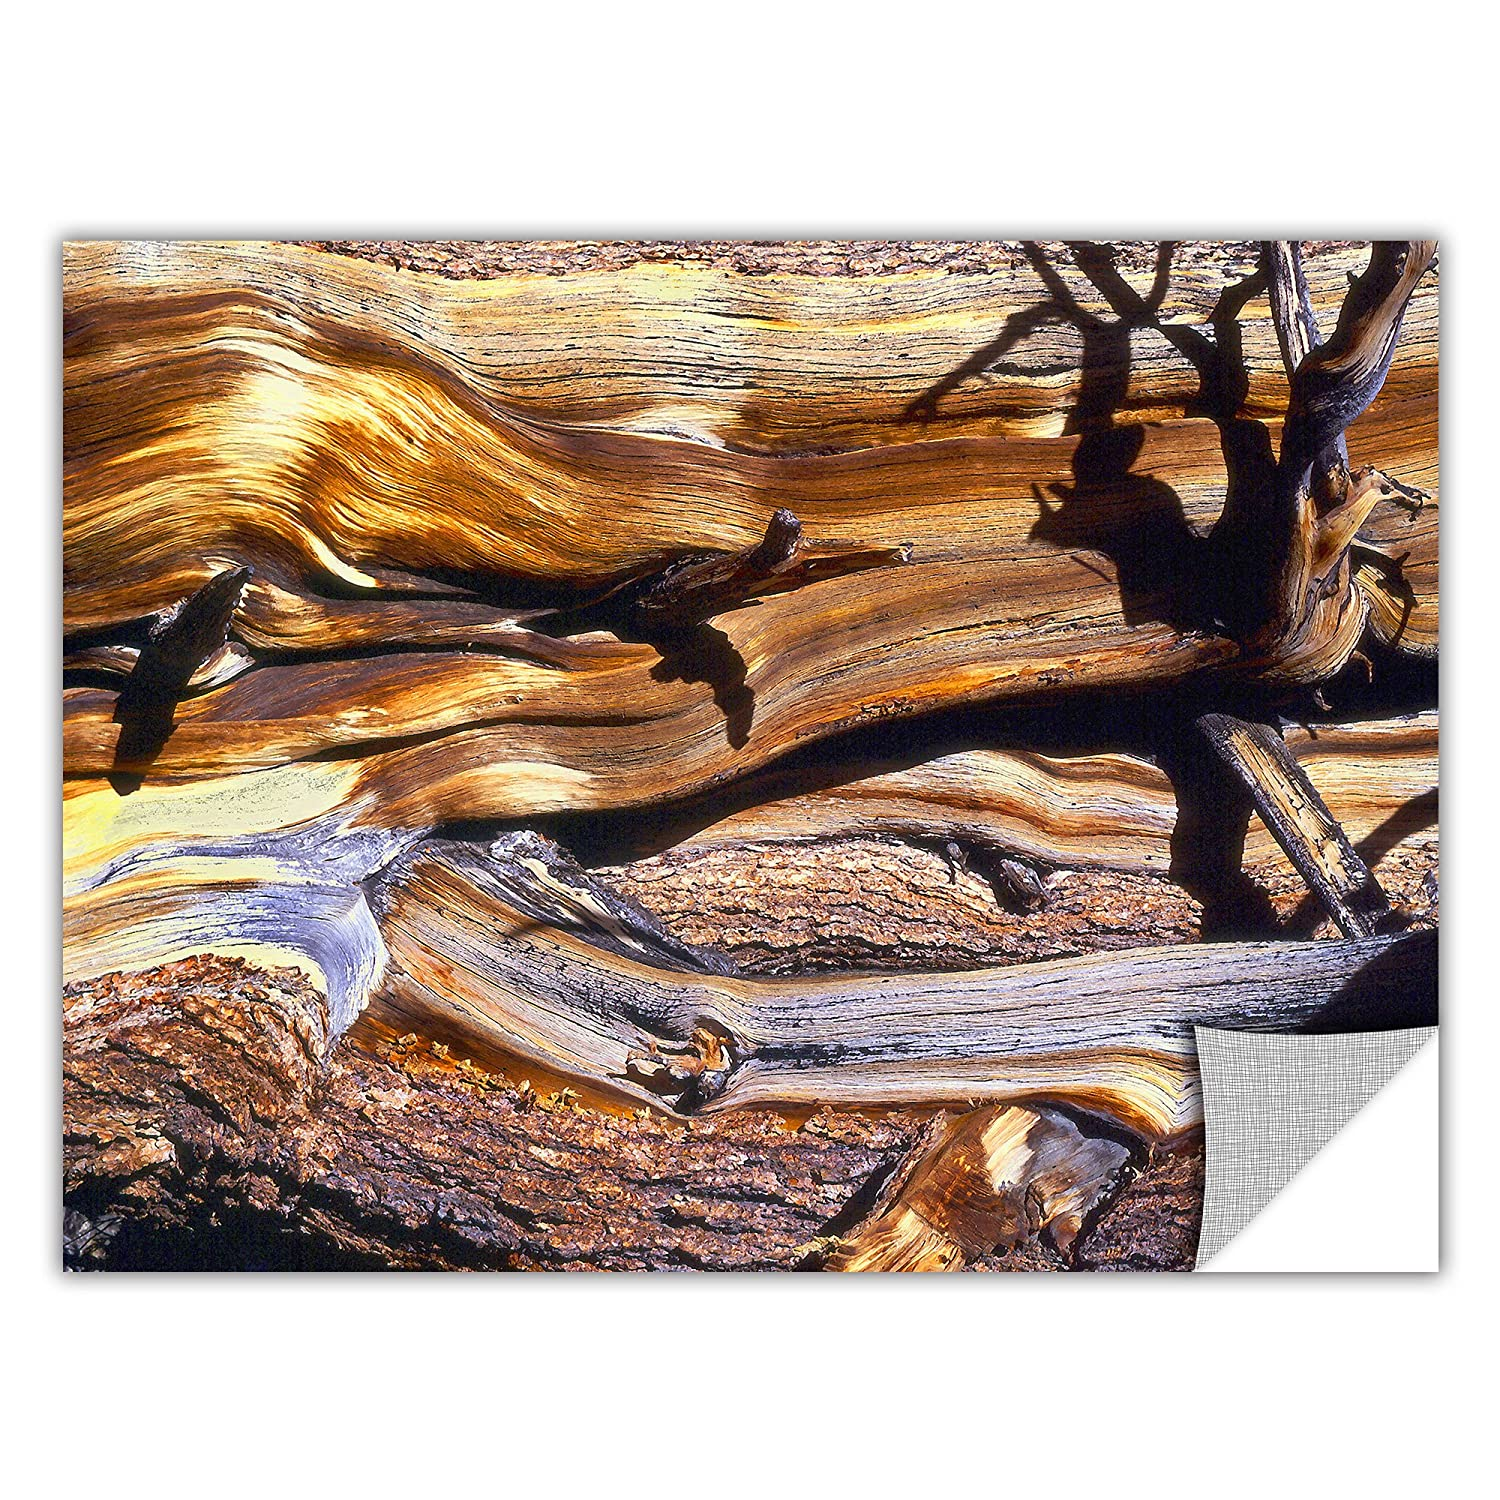 24 by 32-Inch ArtWall Ancient Bristlecone Removable Wall Art by Dean Uhlinger